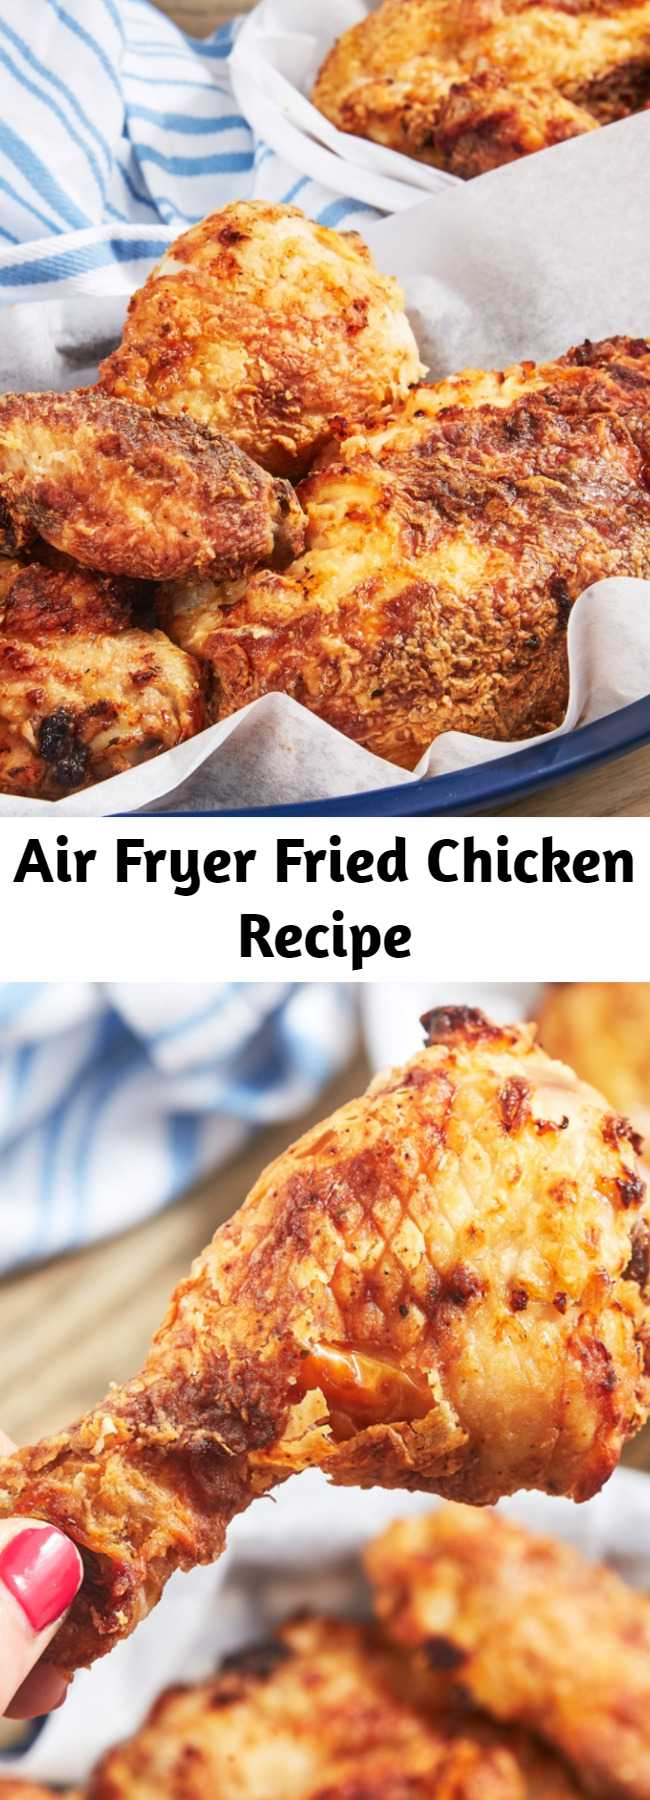 Air Fryer Fried Chicken Recipe - Imagine the best fried chicken you've ever had. Now imagine if it wasn't even fried. Crazy, right? Not with this easy air-fryer fried chicken recipe! The air fryer works some kind of magic on the chicken, and it crisps up into perfectly crunchy chicken as if it had been deep-fried. That buttermilk marinade makes the chicken so tender and juicy and gives it just the right amount of heat. It might just be our favorite chicken recipe ever.